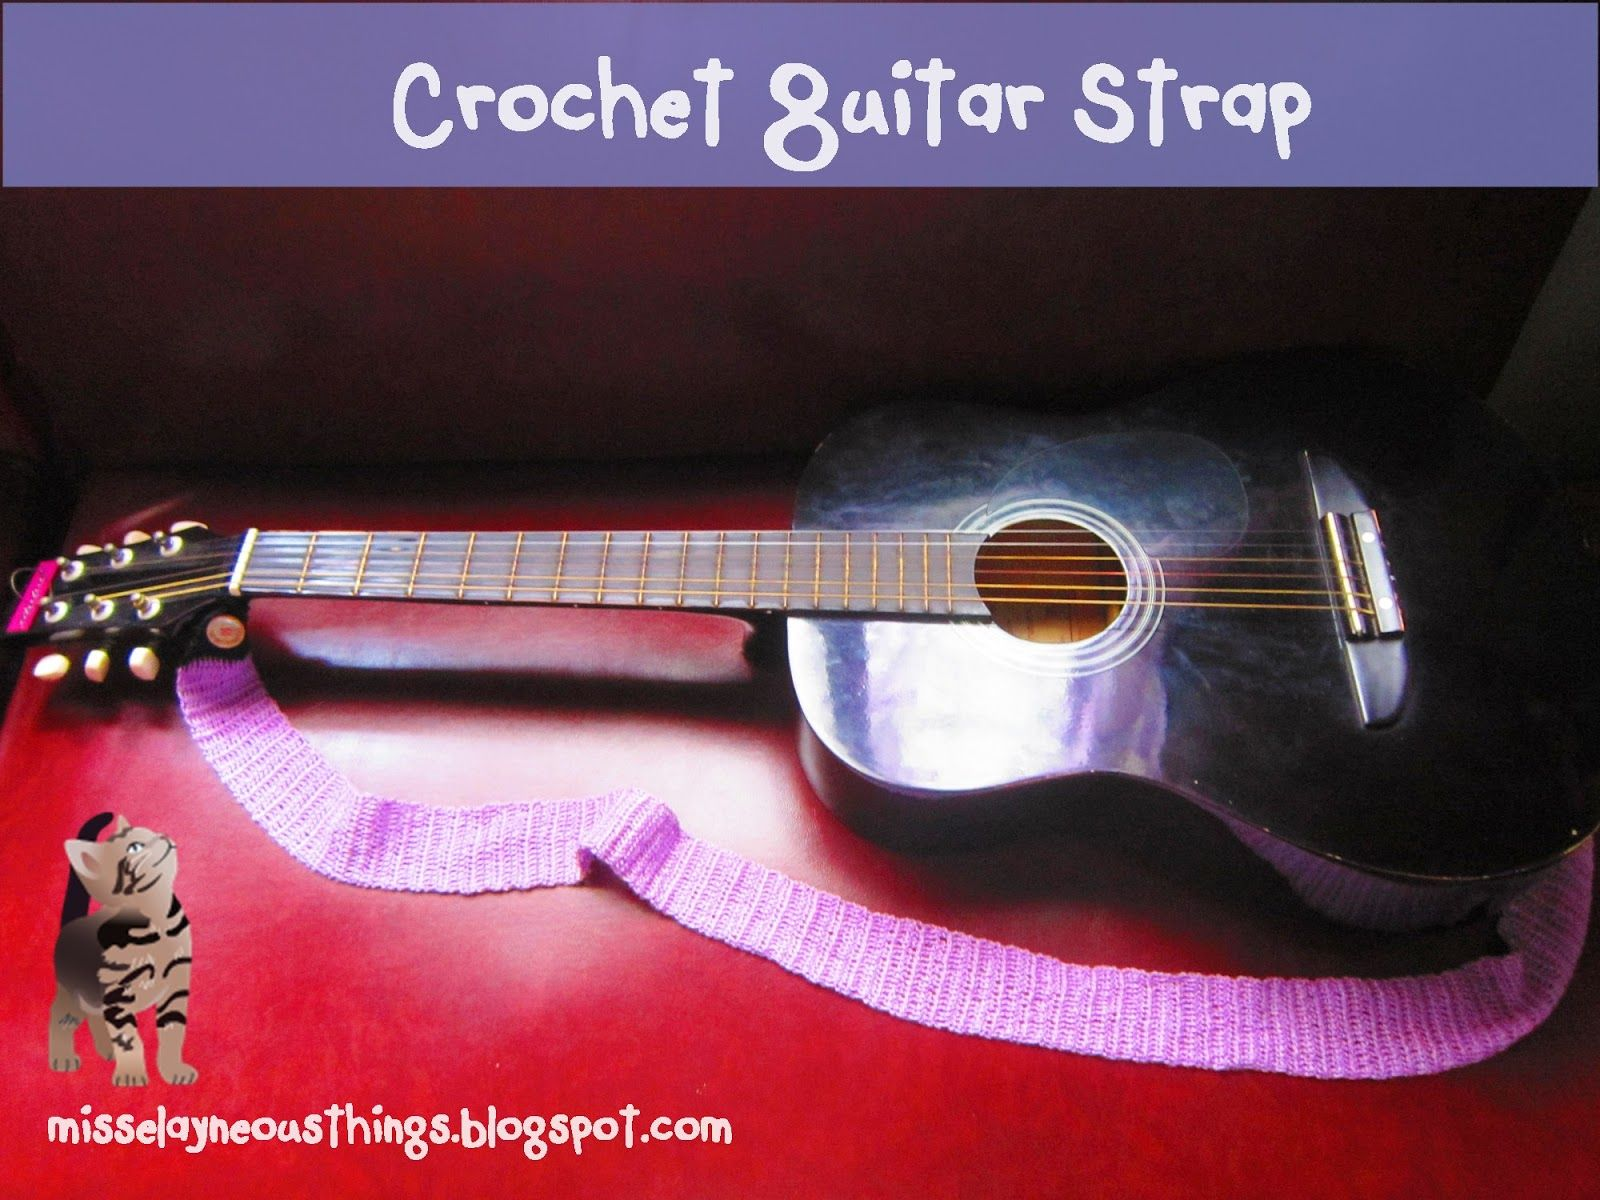 i'm a proud crafter: diy crochet your own guitar strap | bobby